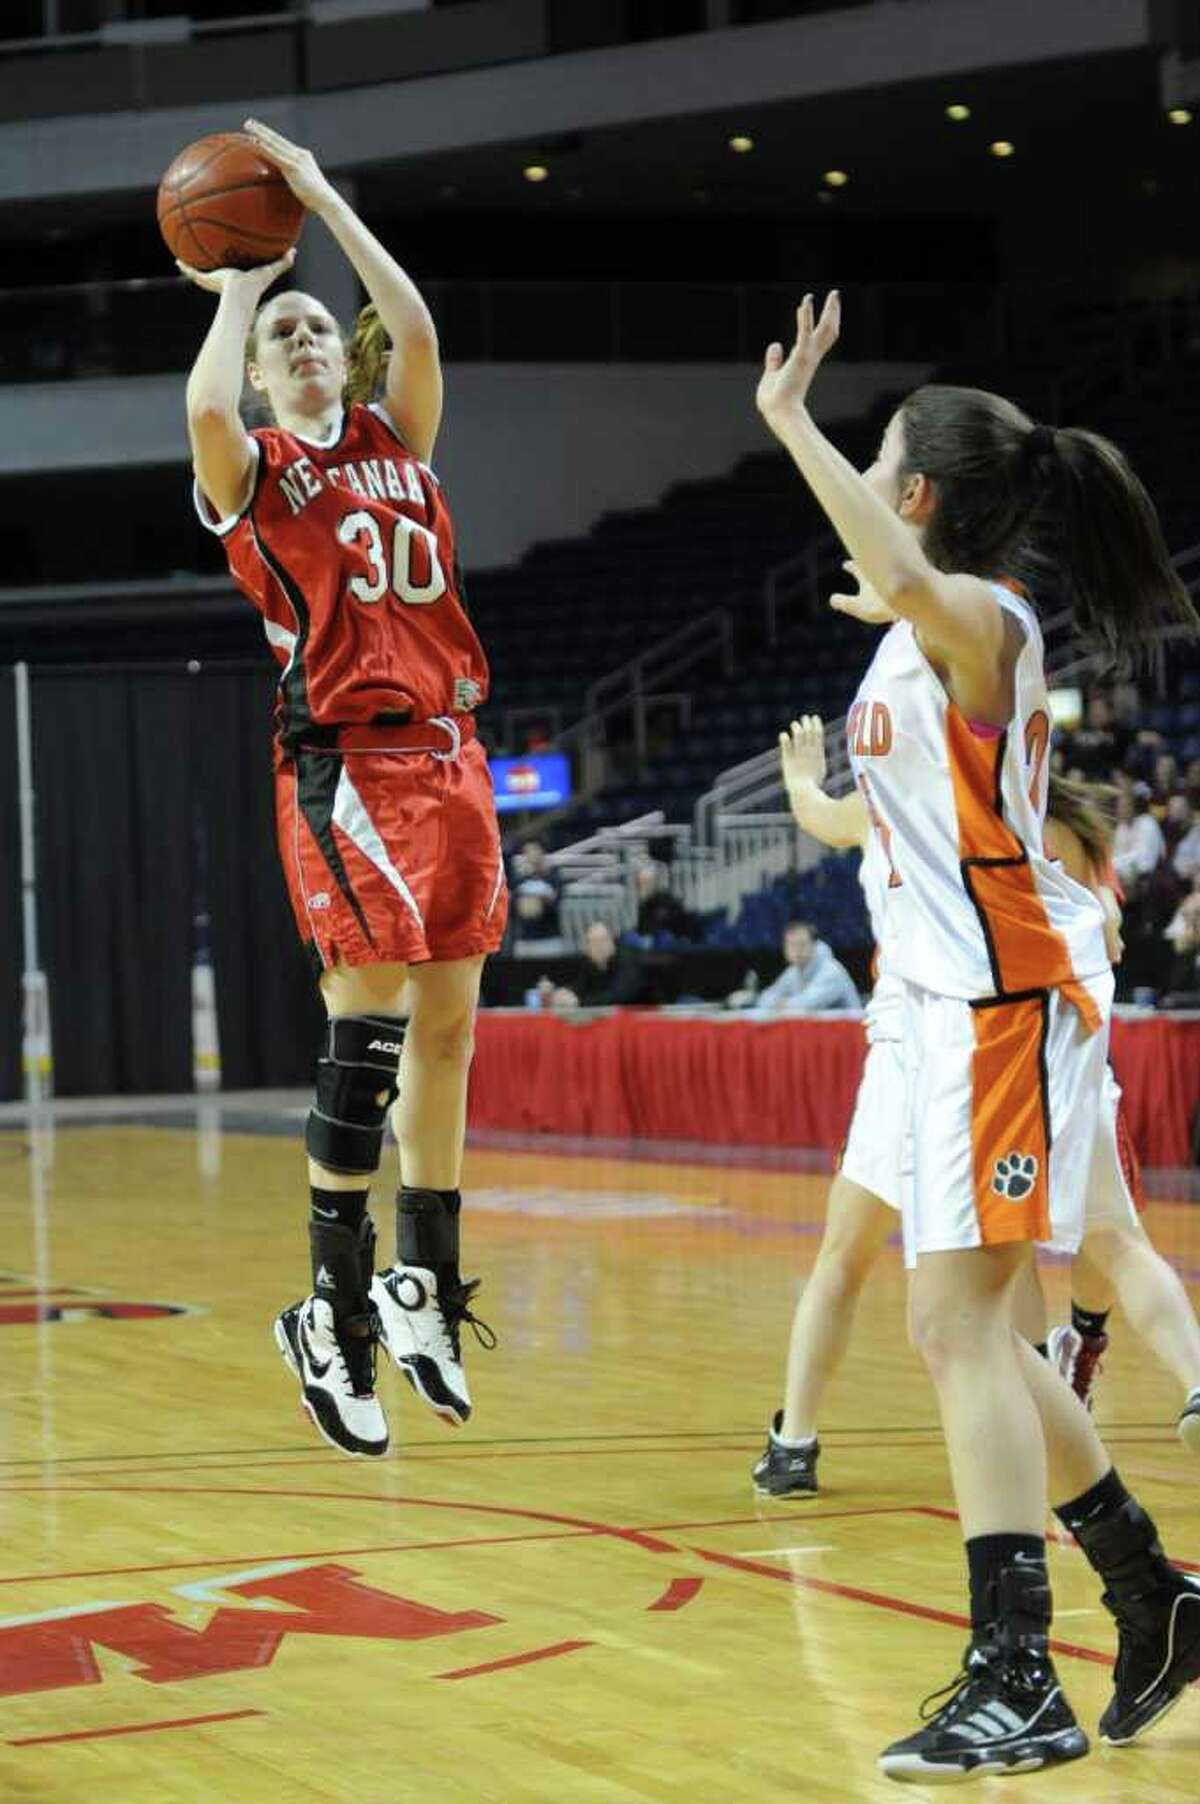 New Canaan's Melissa Tweed takes a shot during Tuesday's FCIAC girls basketball semifinal game at the Webster Bank Arena at Harbor Yard on Feburary 22, 2011.